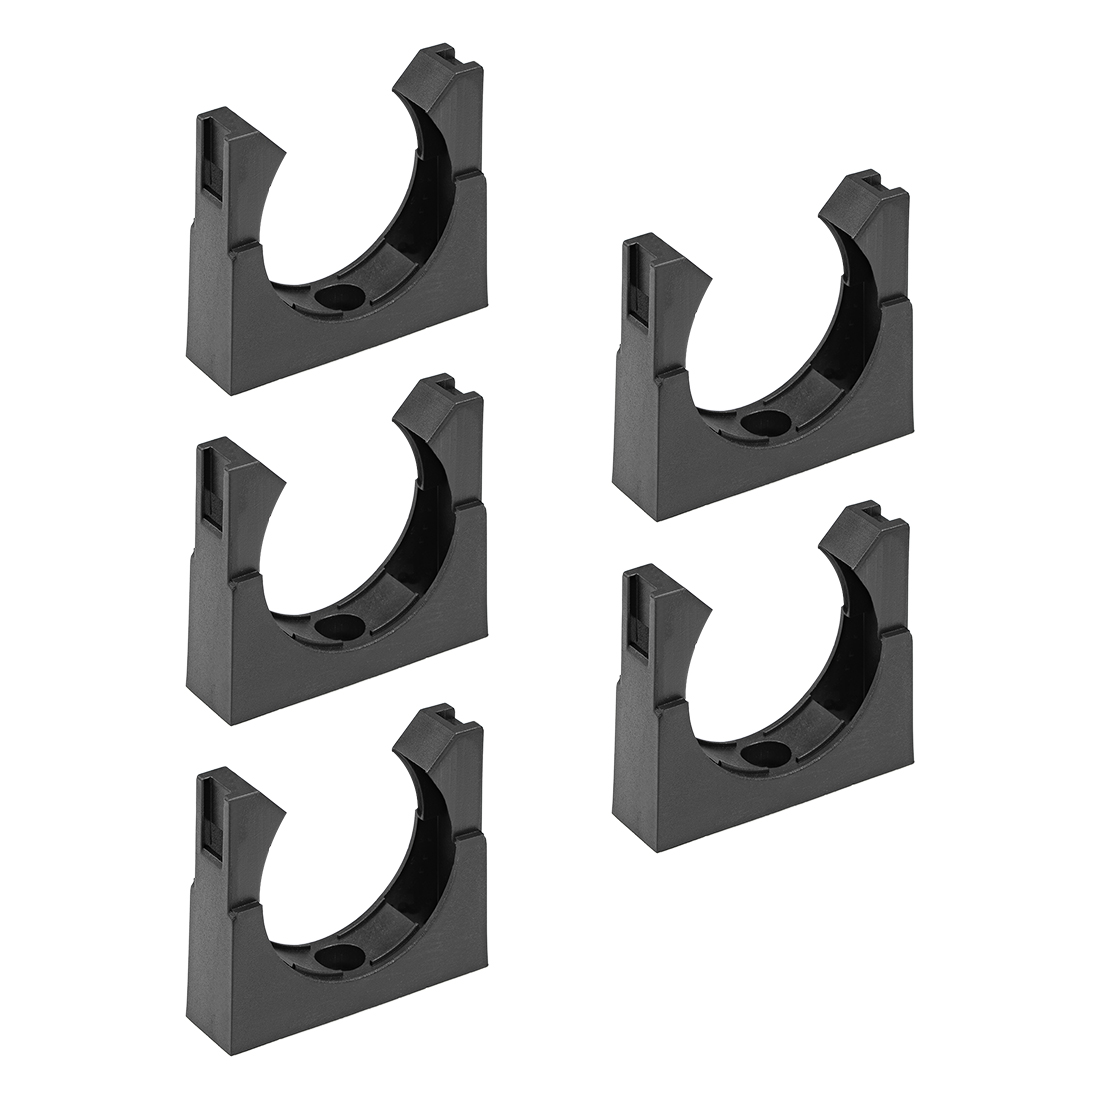 Corrugated Tube Holder AD54.5 Plastic Mounting Bracket Pipe Clamp Clips 5Pcs